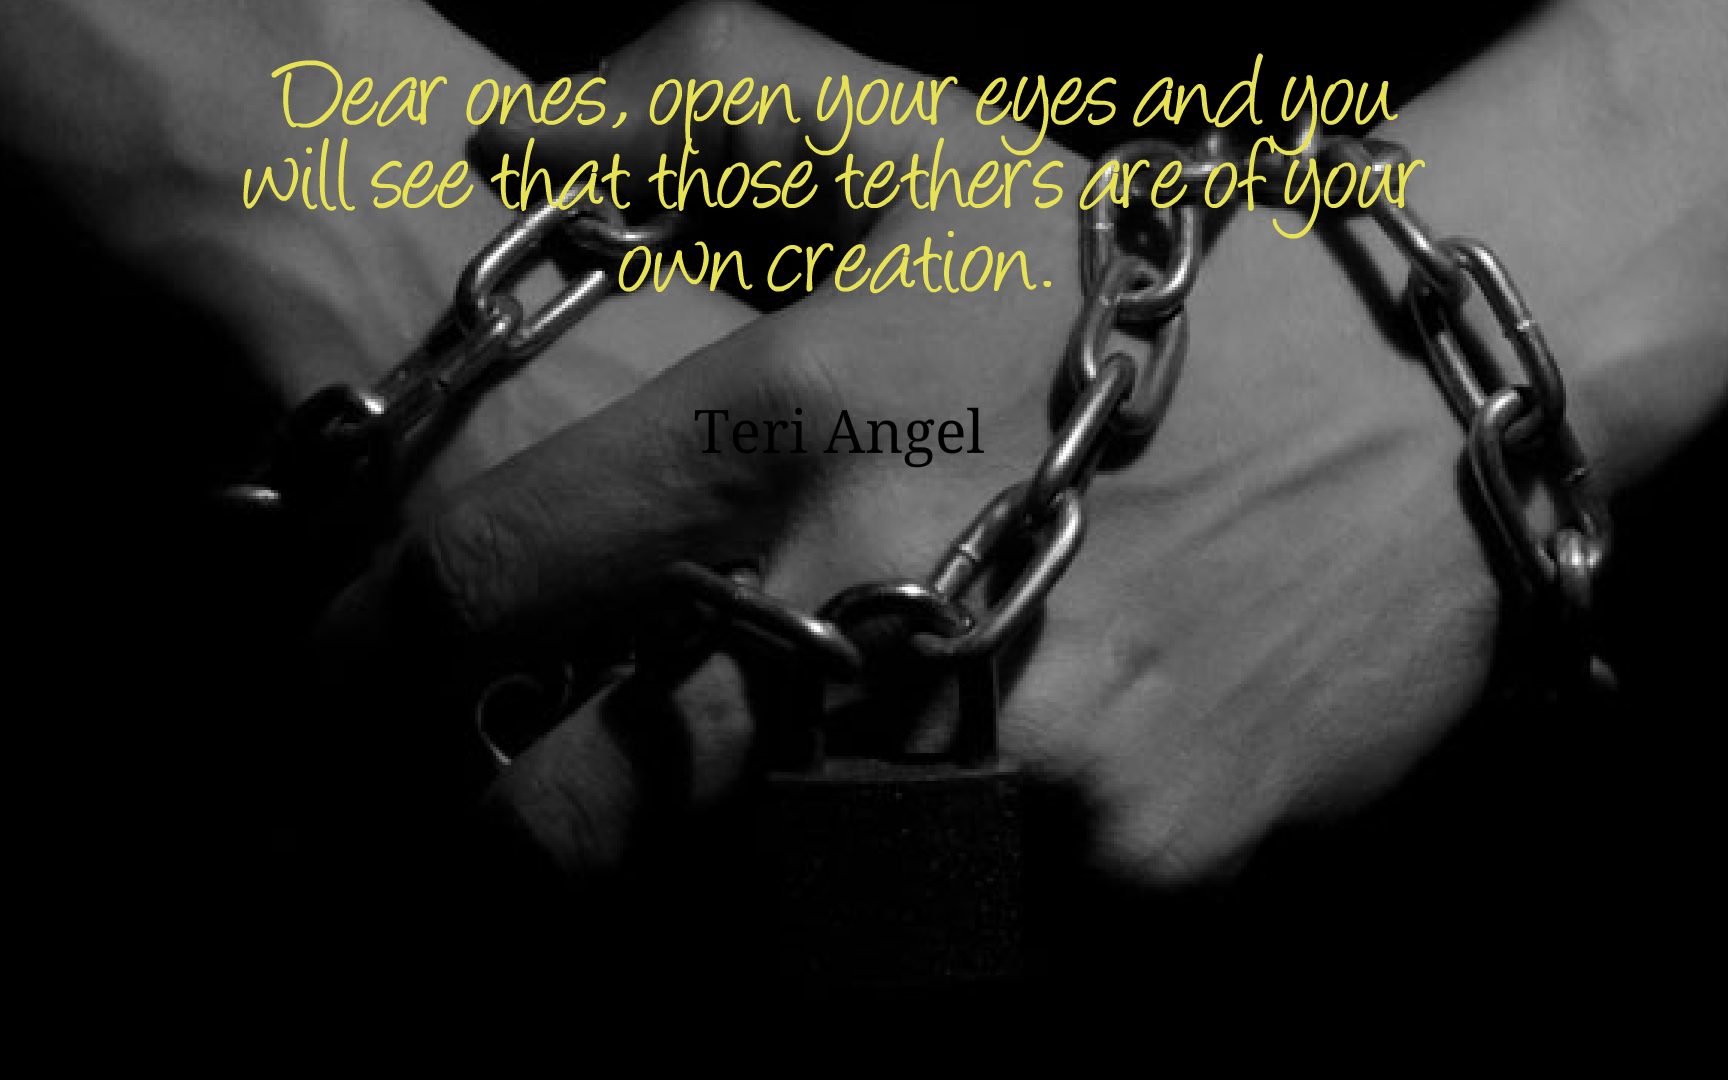 quotes-Dear-ones--open-your